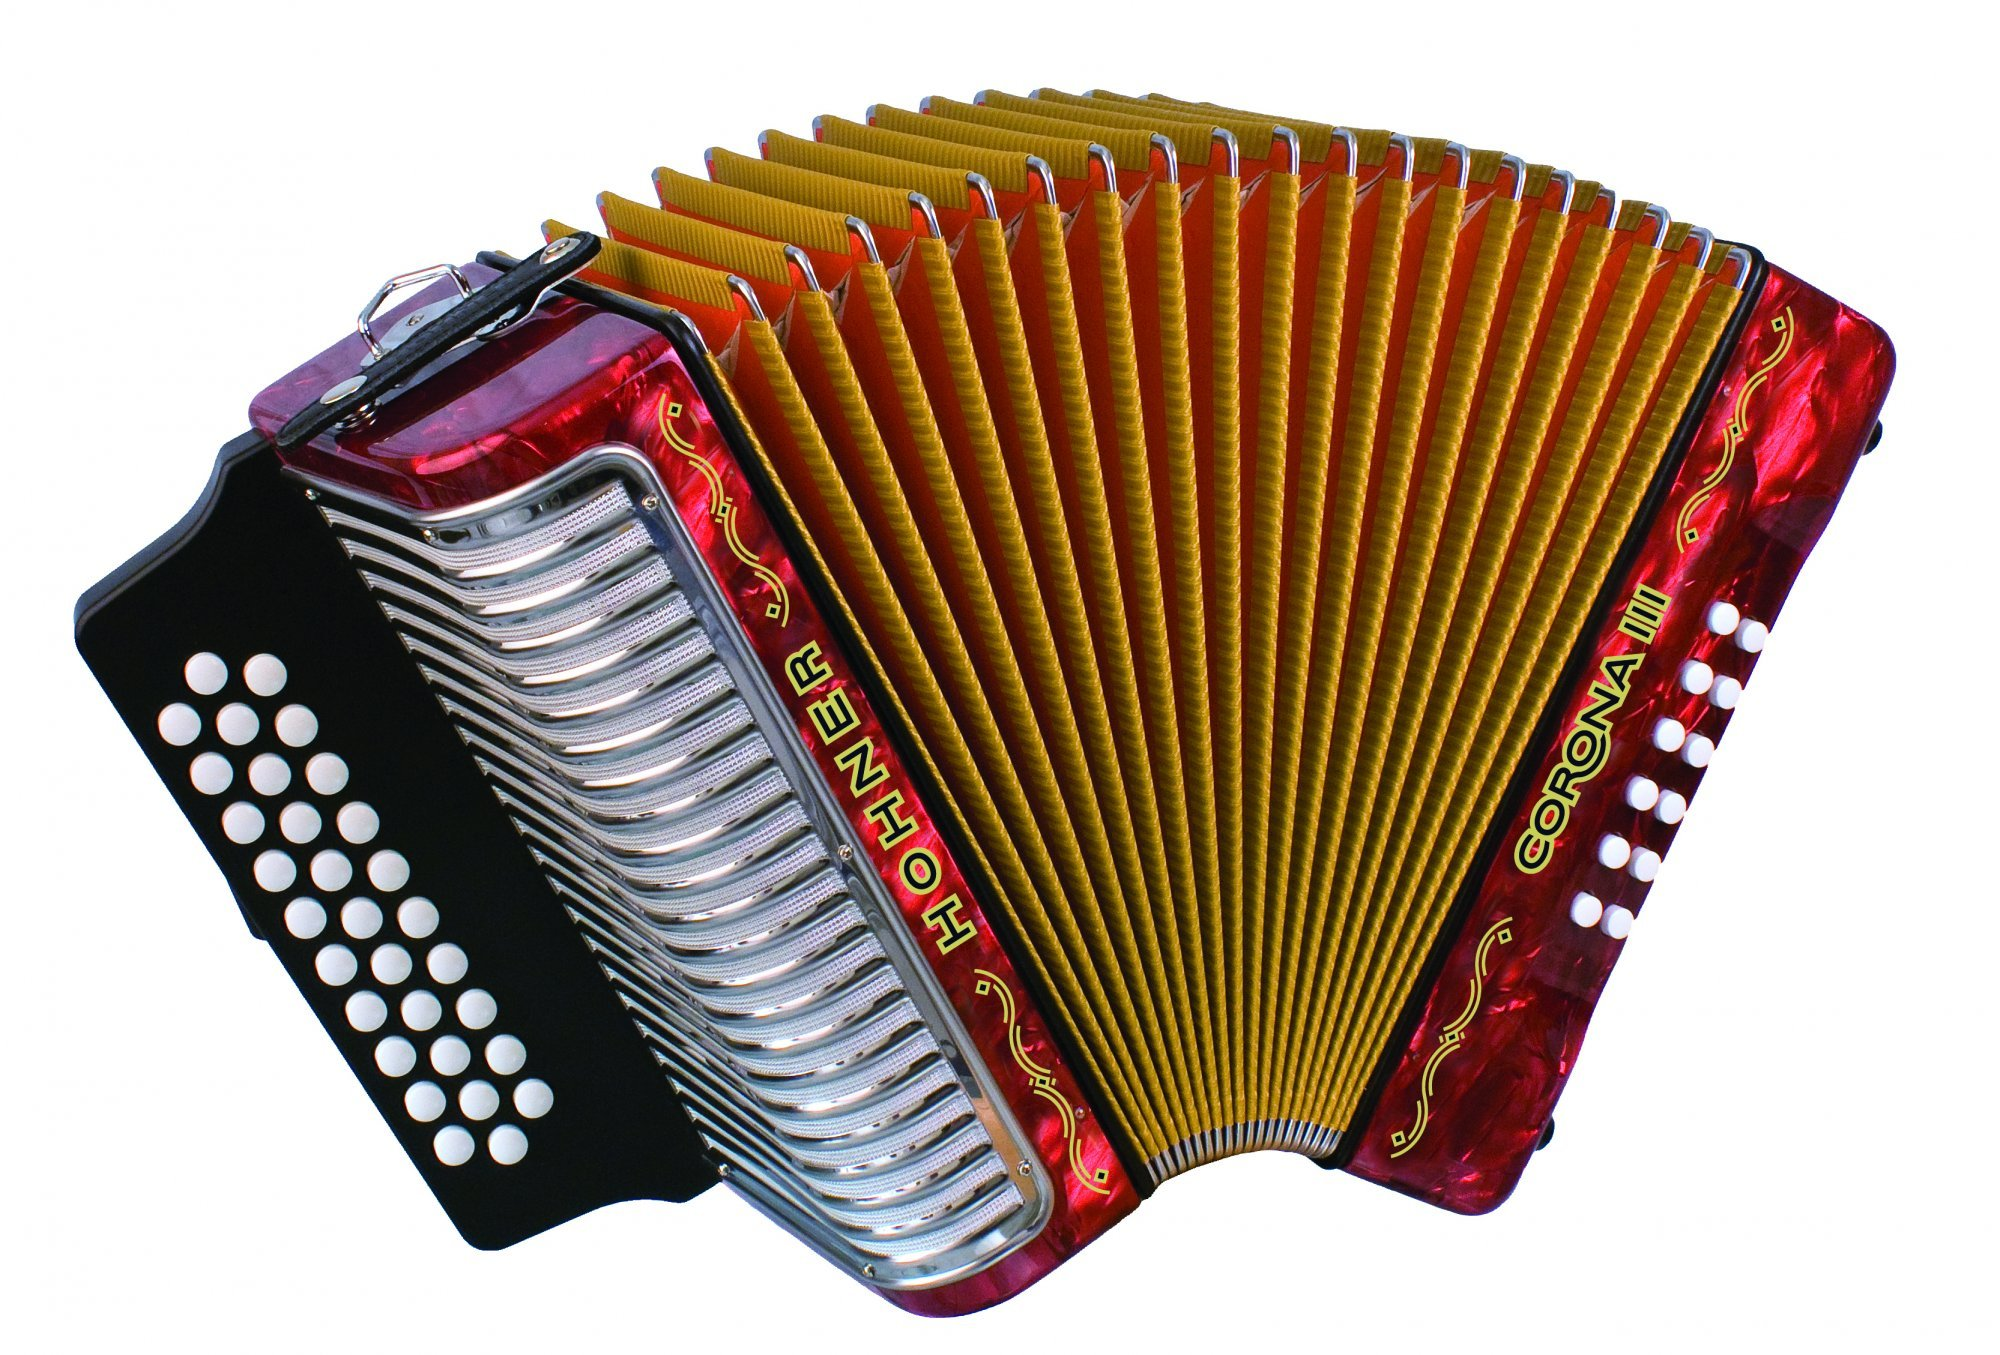 Pearl Red Hohner Piano Accordion Bravo III 96 with Gig Bag /& Straps